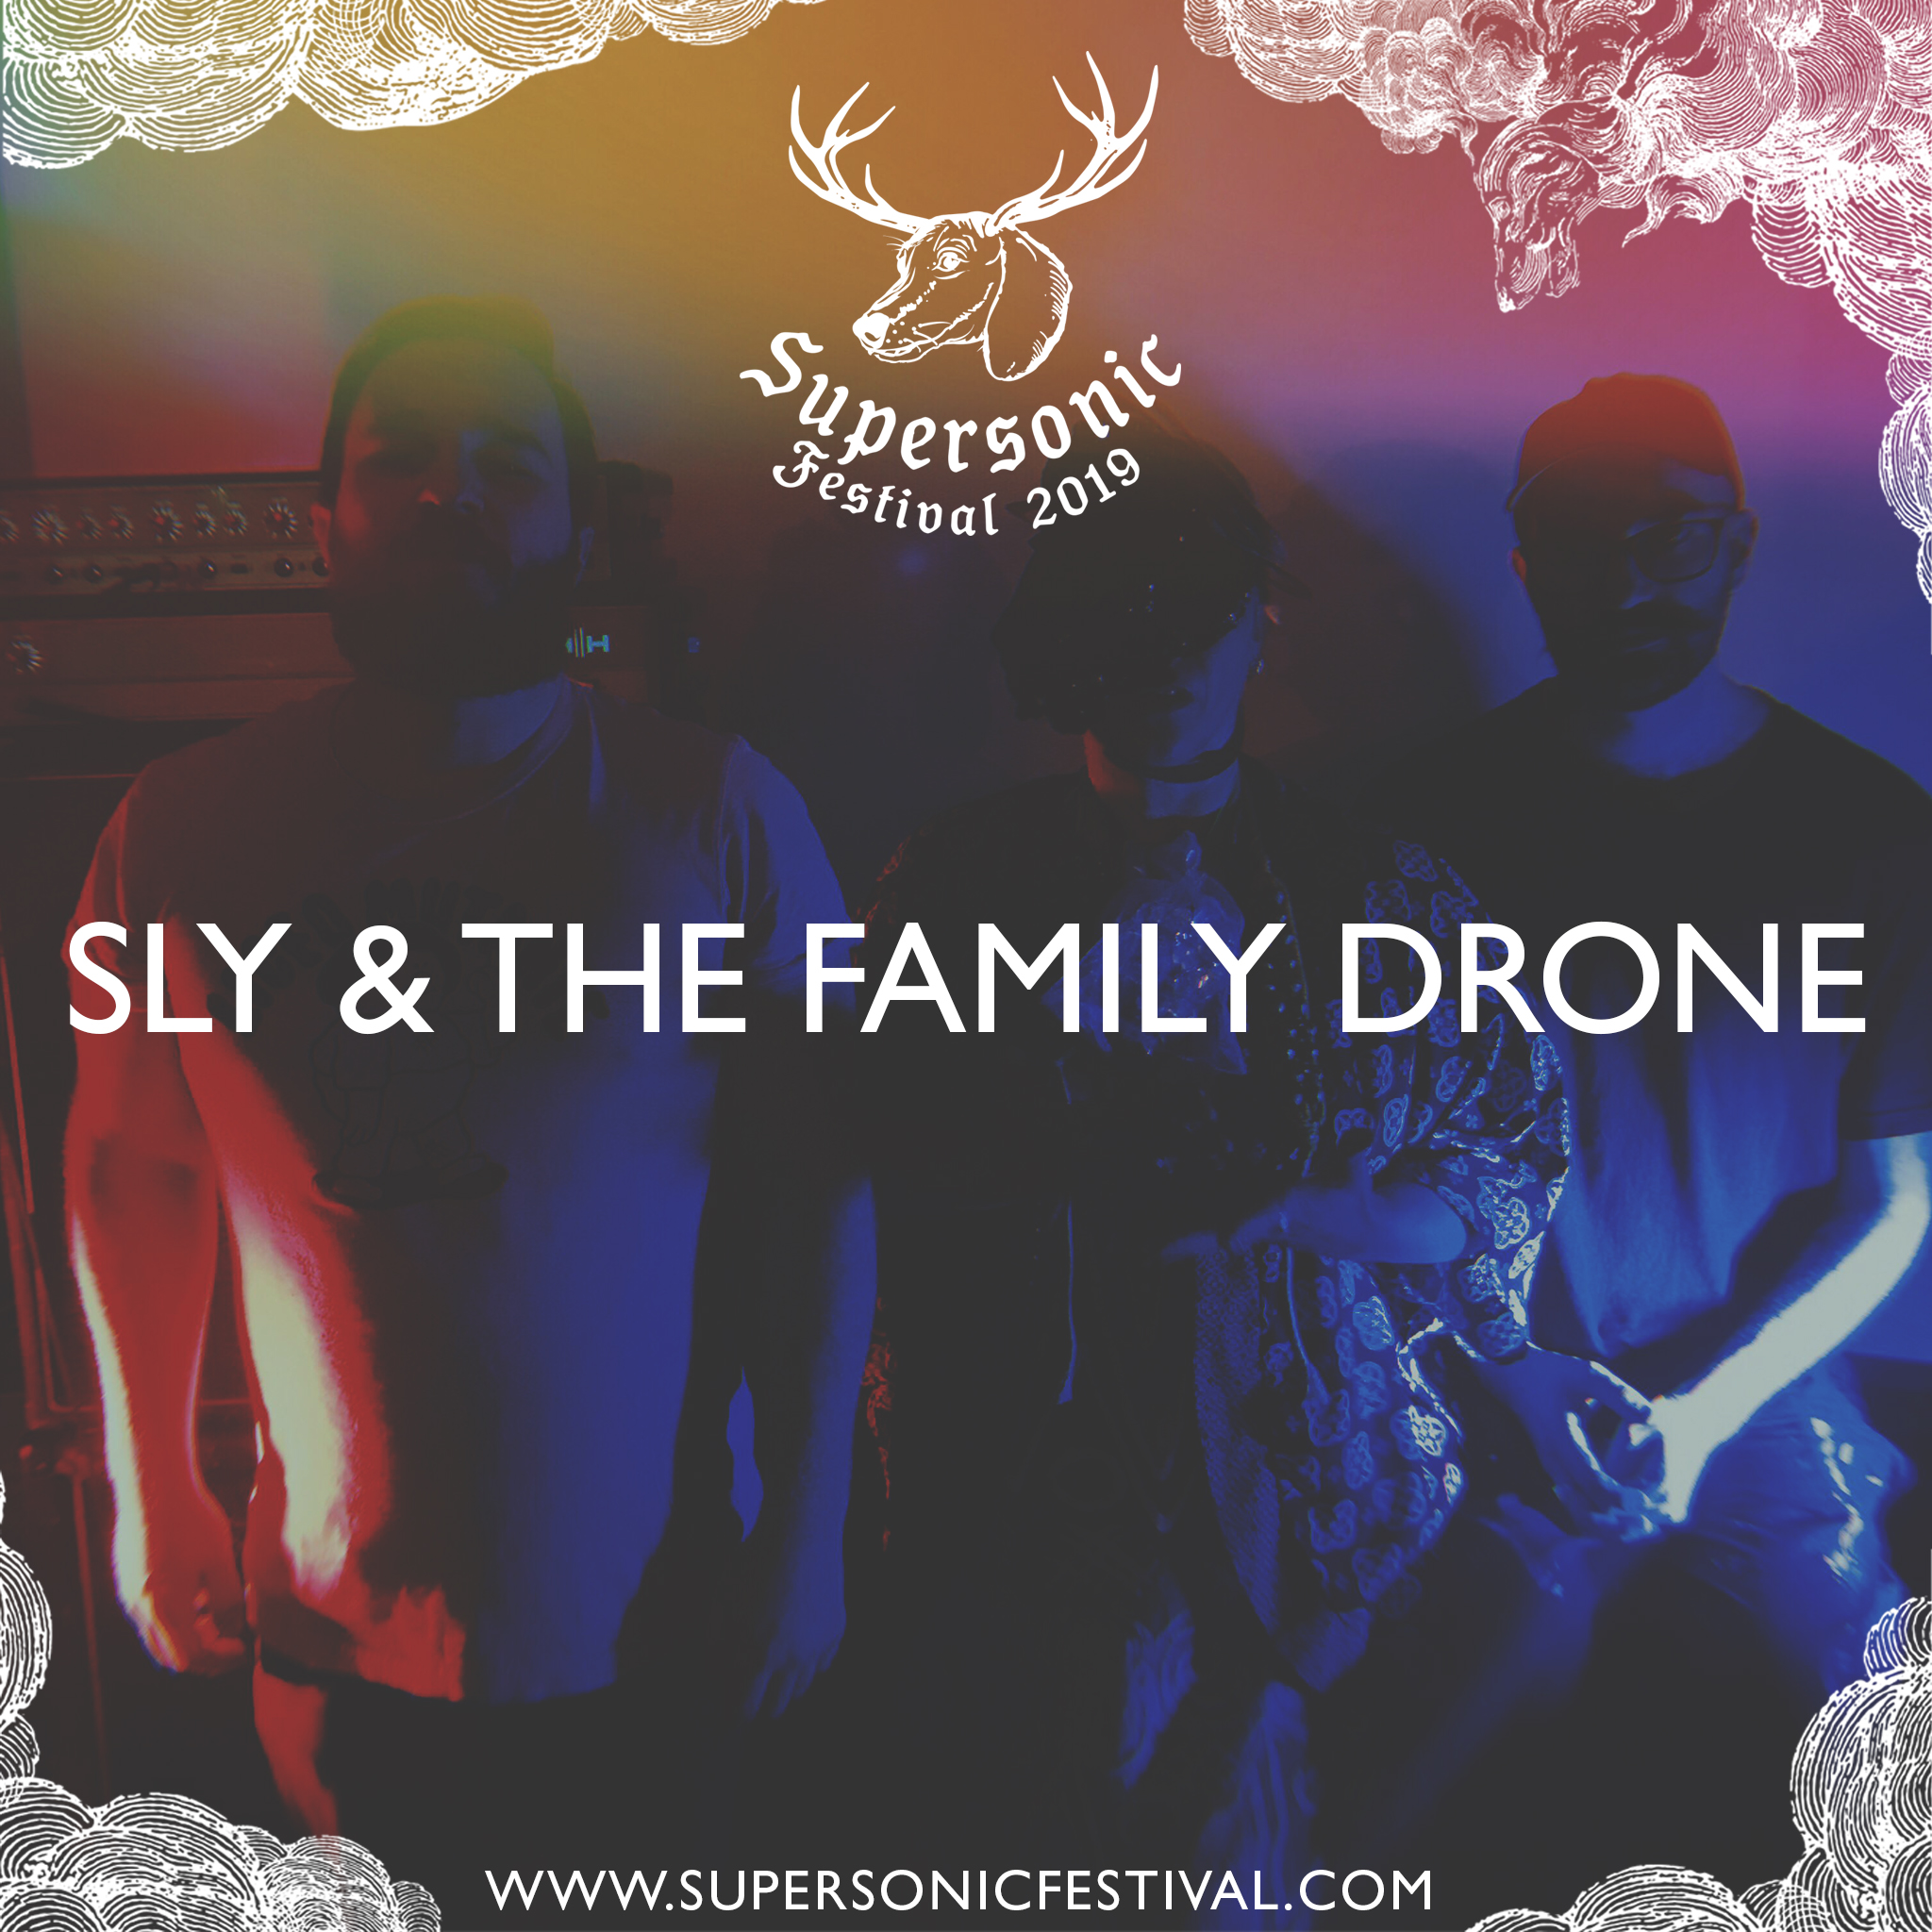 News – Supersonic Festival | 19-21 July 2019